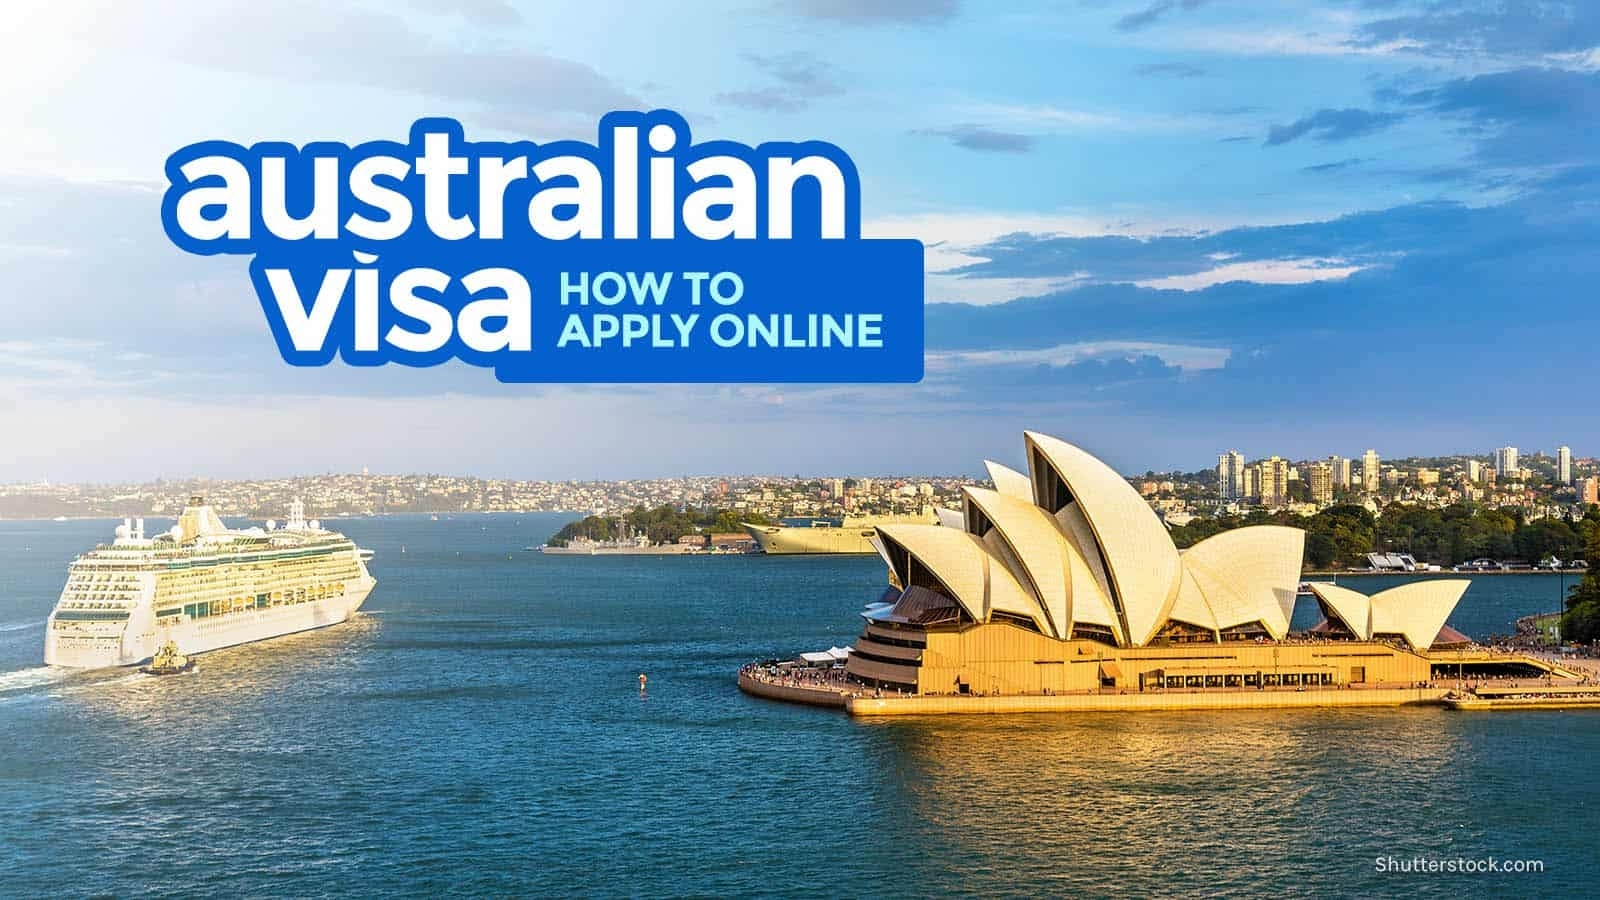 Australian Visa: Requirements & Online Application 2019 | The Poor regarding Tourist Visa Australia With Sponsor